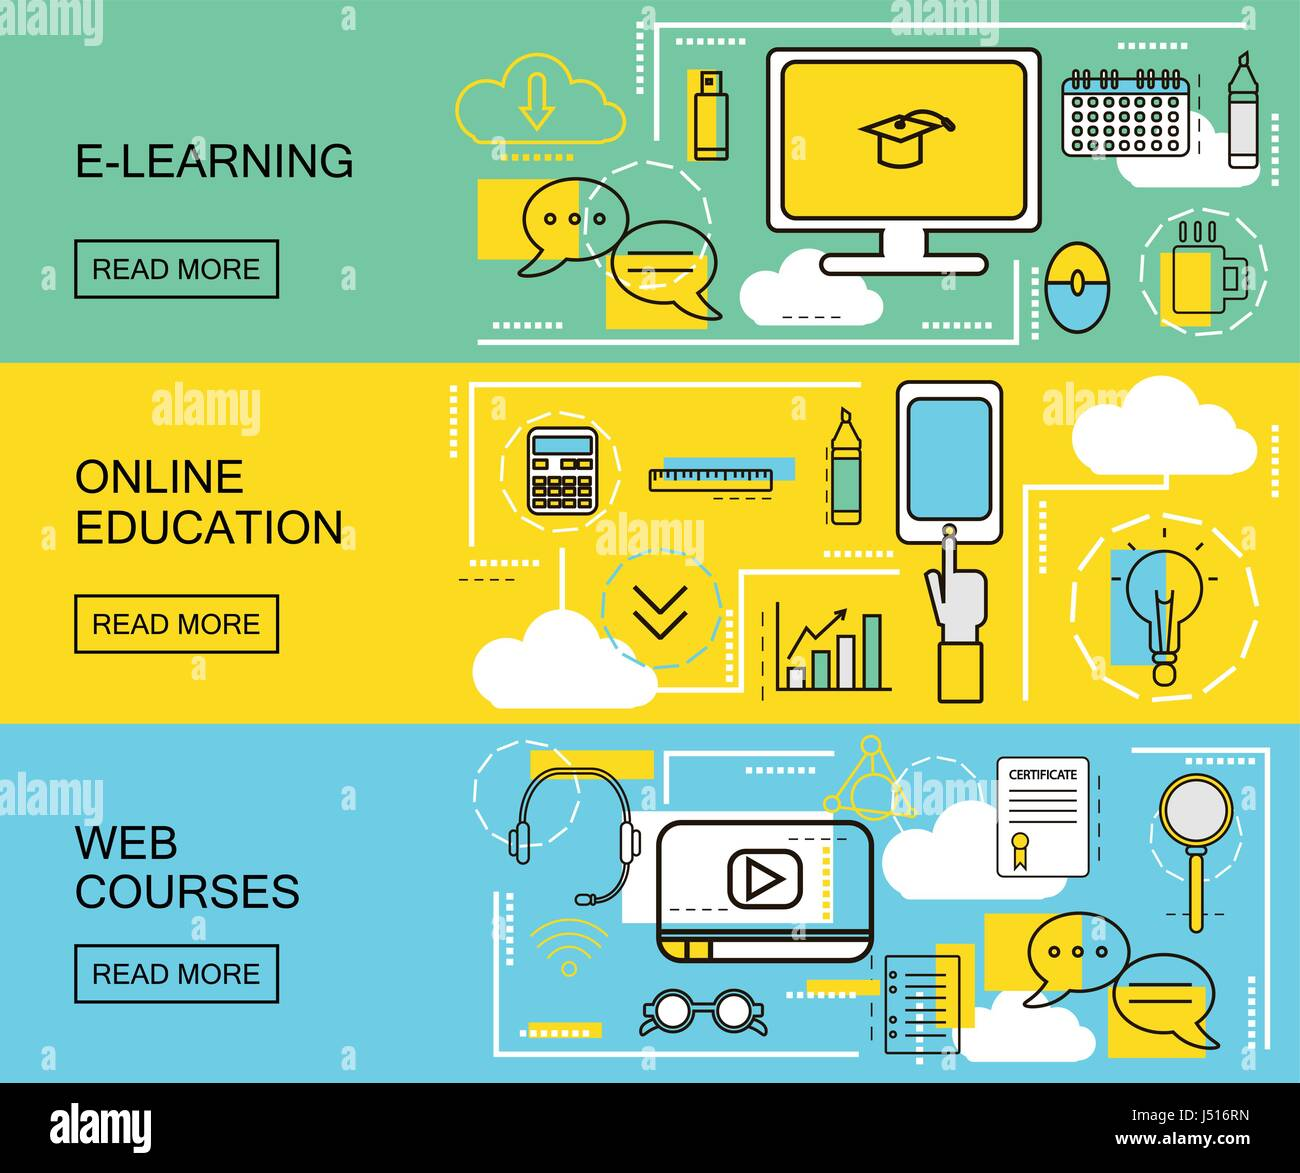 E Learning Online Education And Web Courses Horizontal Banners Stock Vector Image Art Alamy